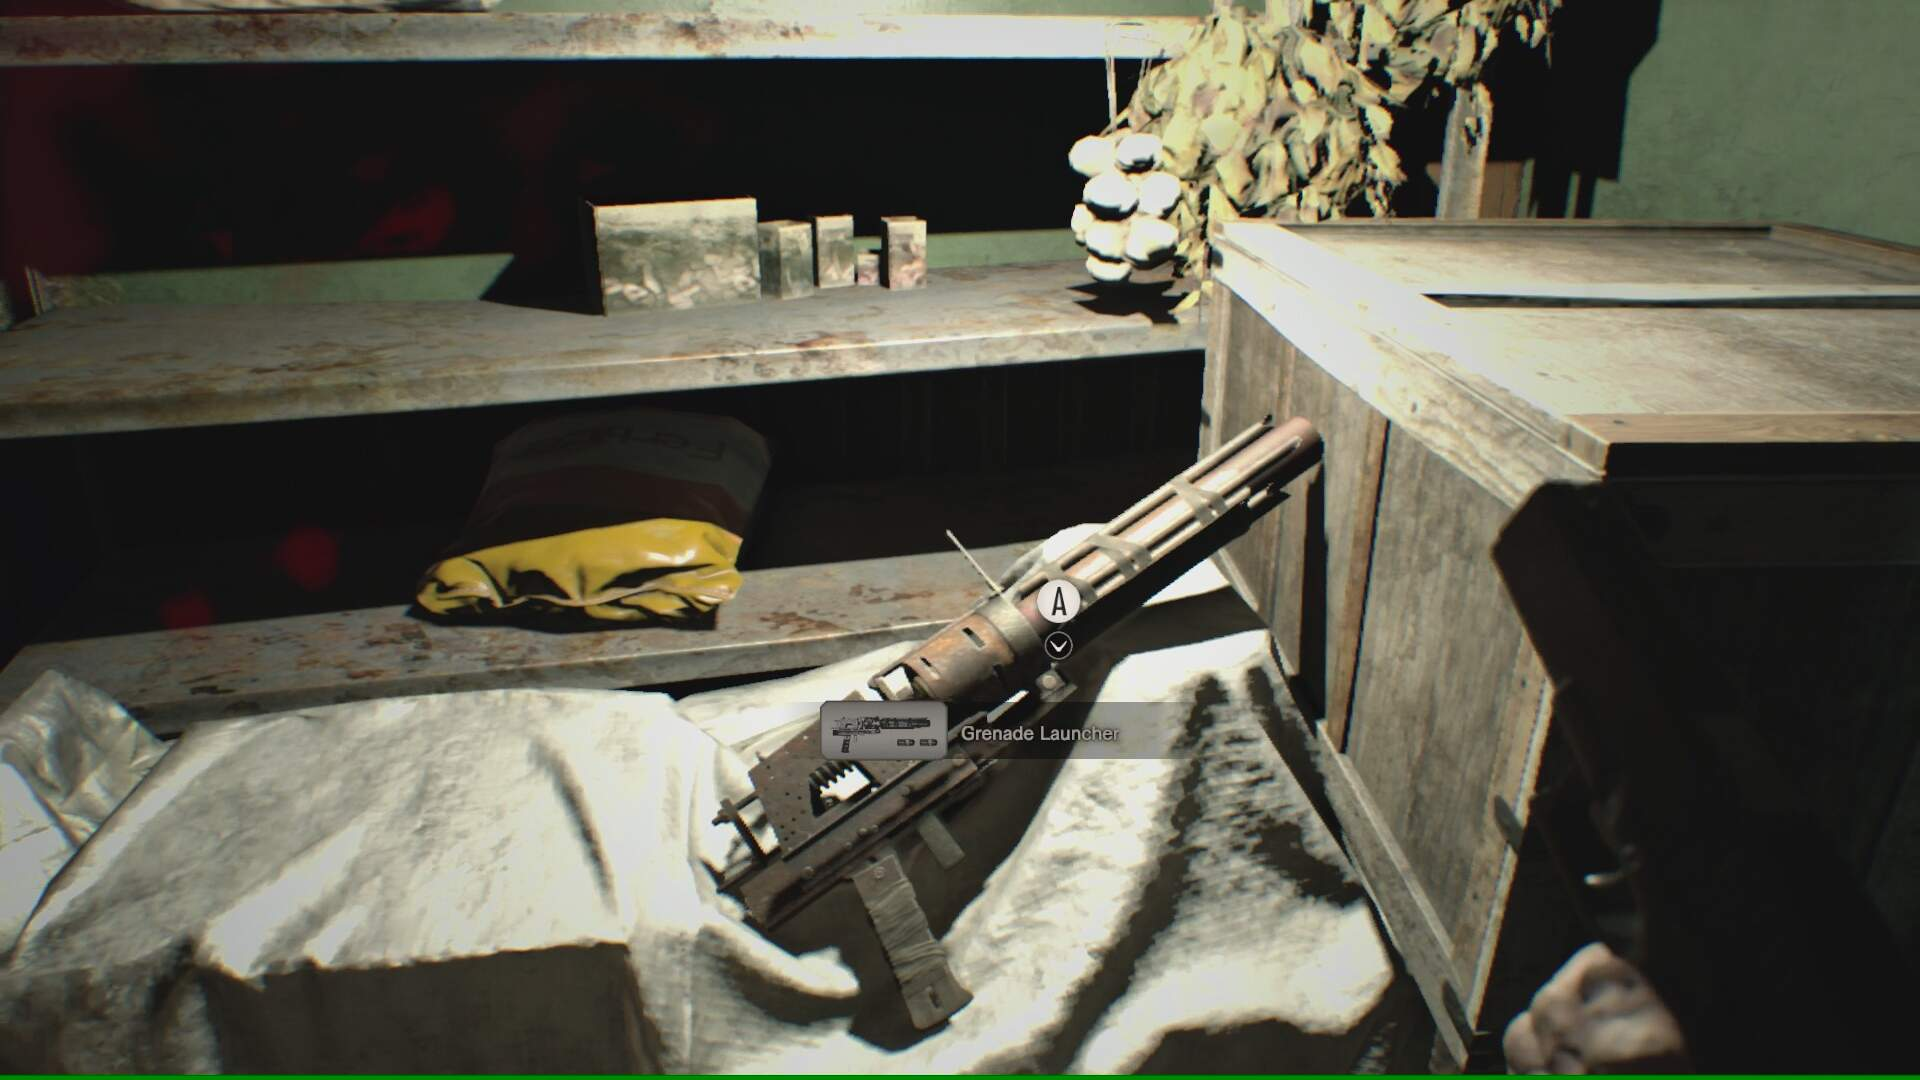 Resident Evil 7 Walkthrough: the Detention Room, How To Get the Grenade Launcher and the Snake Key